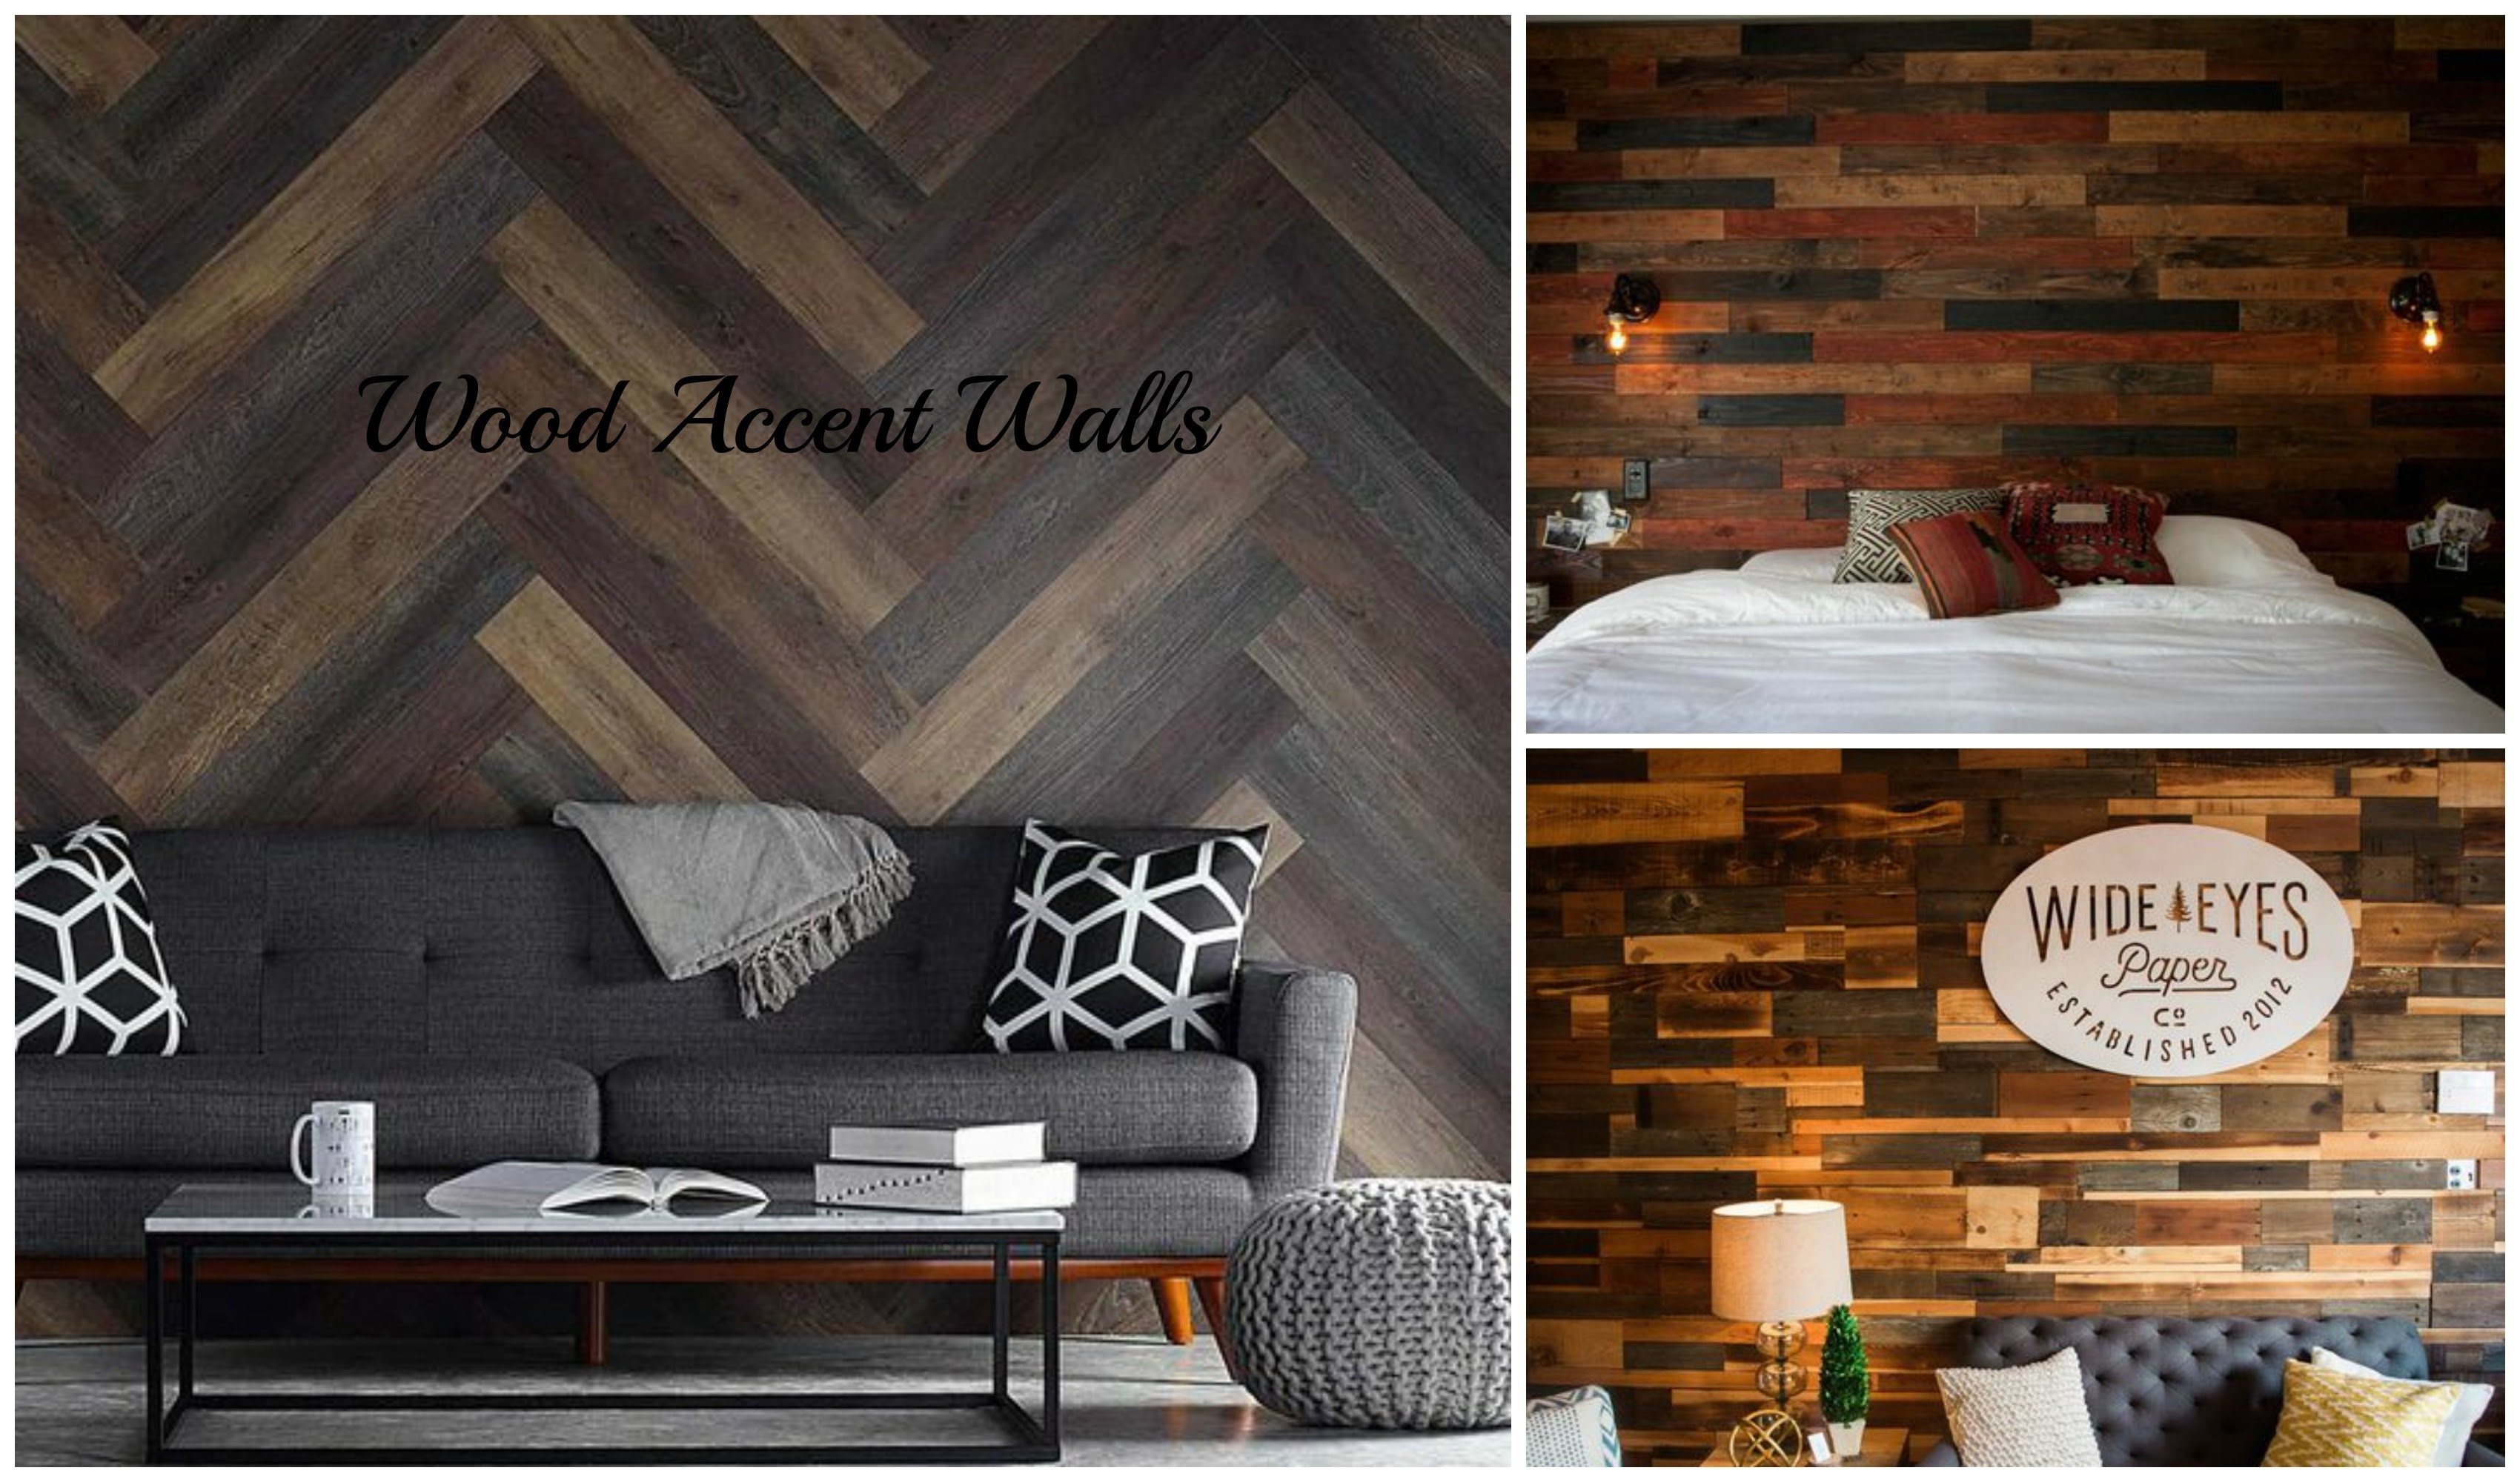 Wood Accent Wall | Pallet Wall Ideas – Youtube With Regard To Most Up To Date Wood Pallets Wall Accents (View 12 of 15)